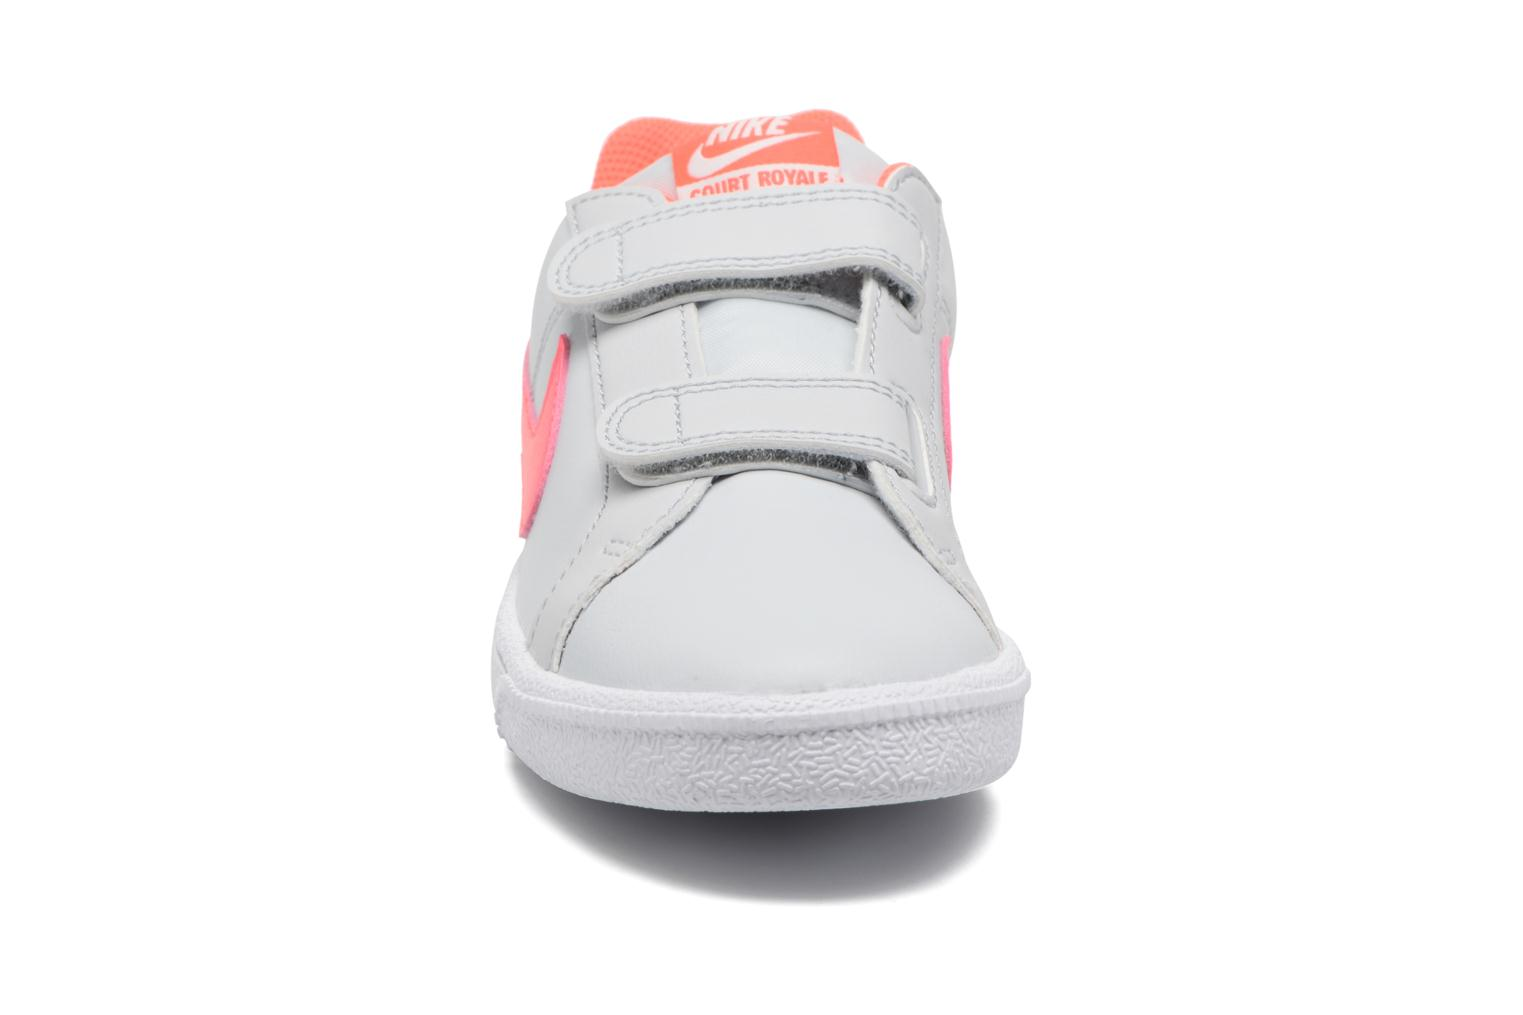 Nike Court Royale (Psv) Pure Platinum/Hot Punch-White